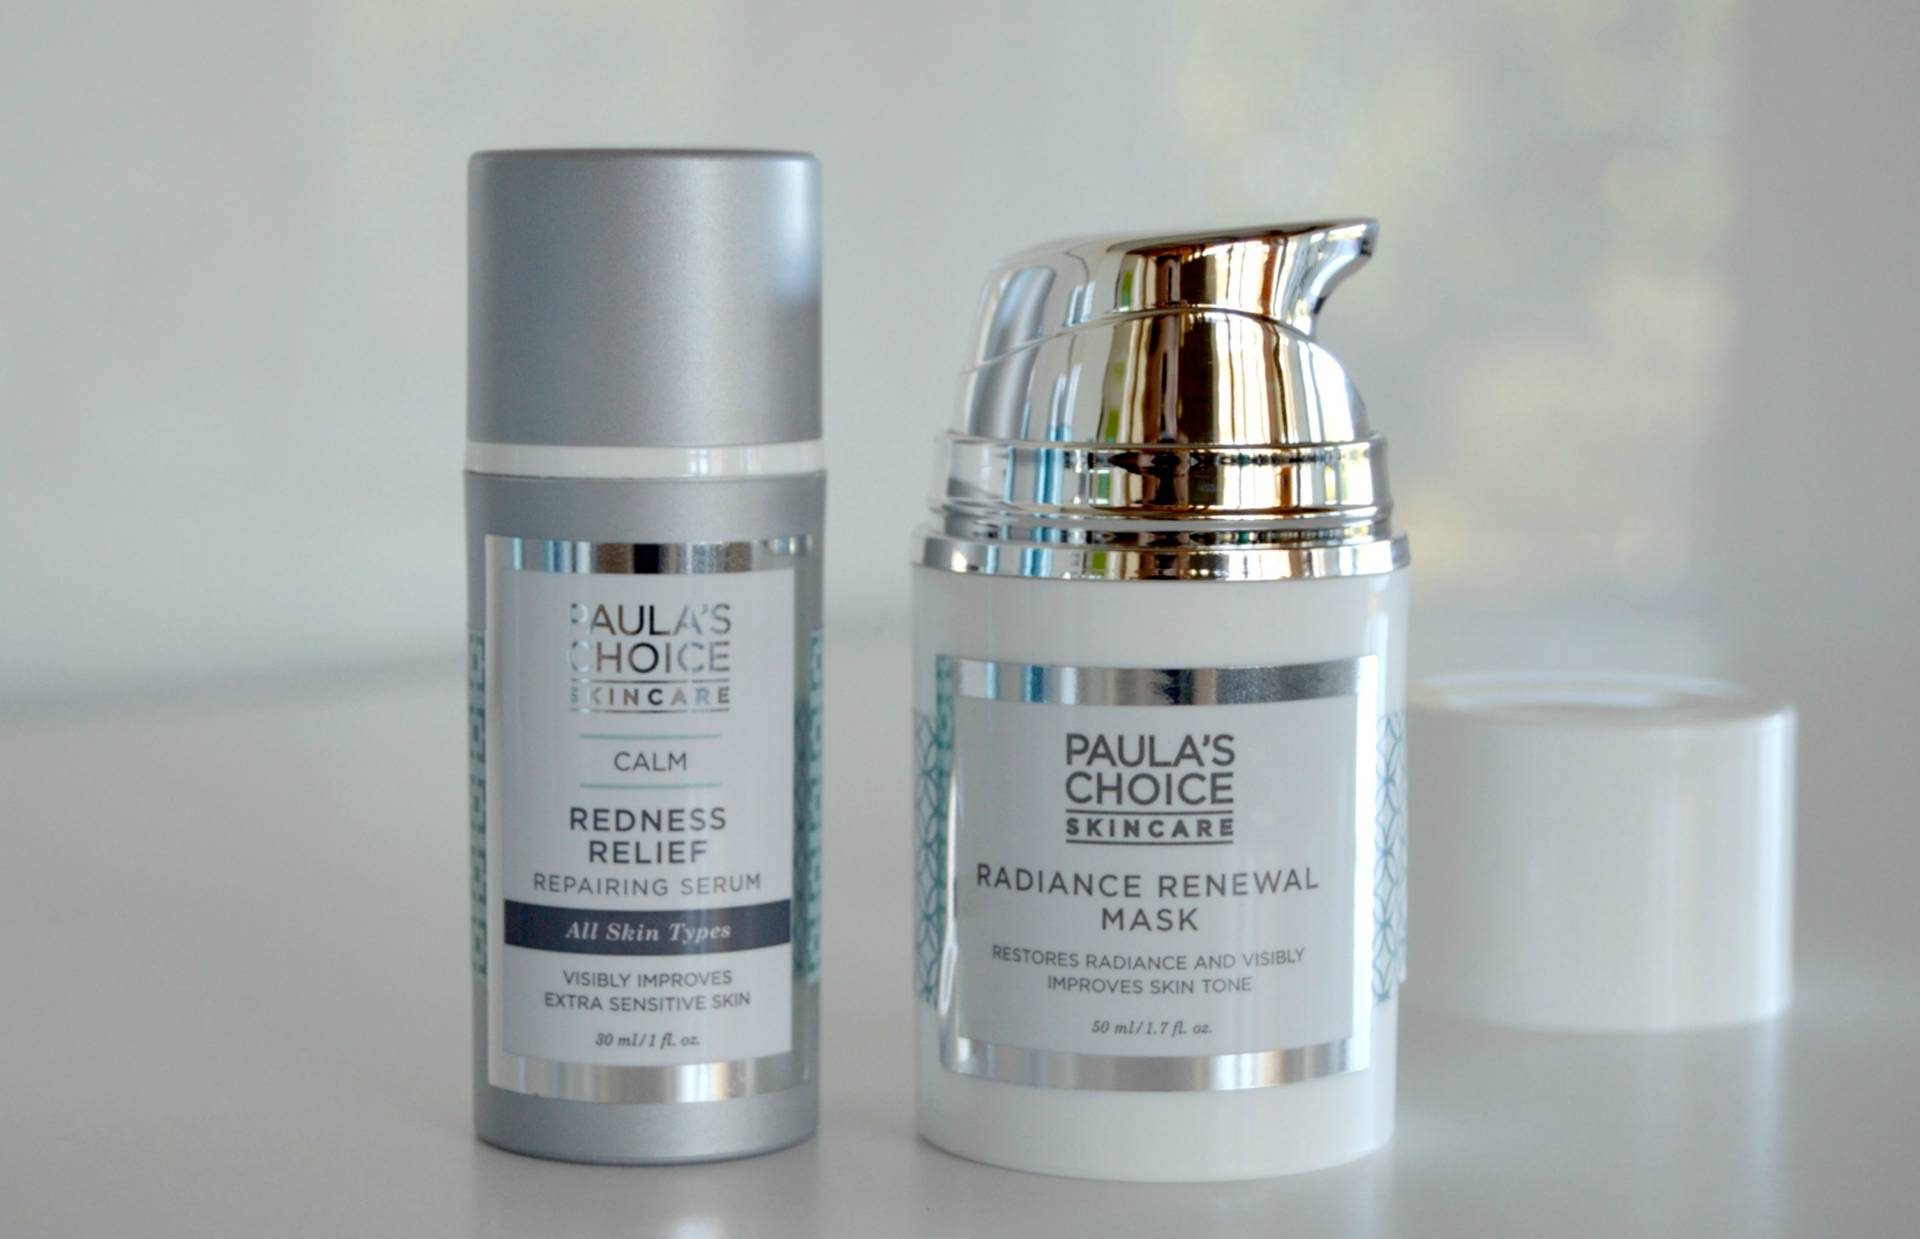 paulas choice new radiance renewal overnight mask review inhautepursuit